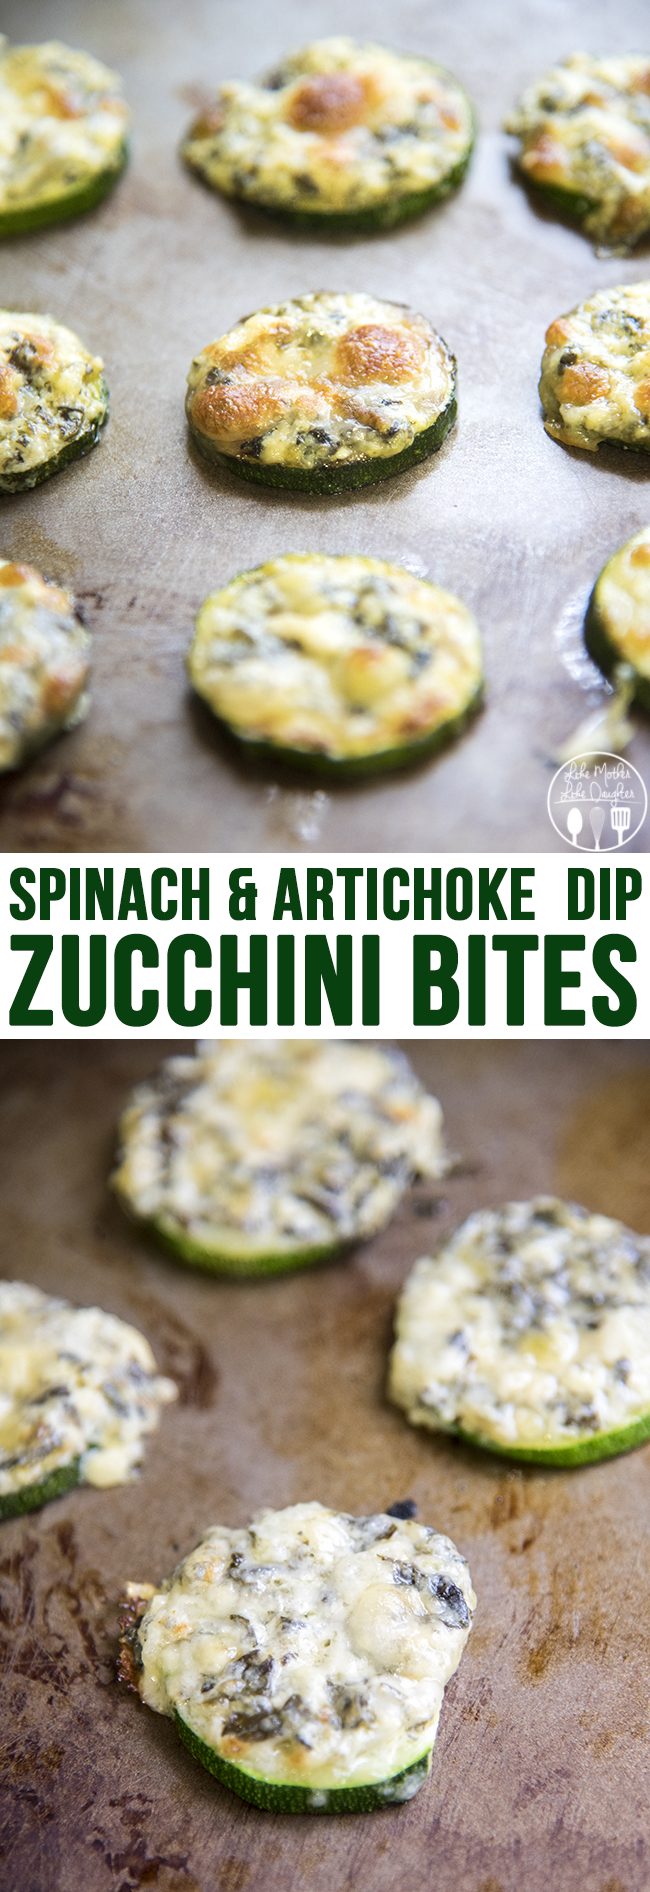 Spinach and Artichoke Dip Zucchini Bites - These These spinach and artichoke dip zucchini bites are only 3 ingredients and the perfect way to enjoy spinach and artichoke dip without the carbs!